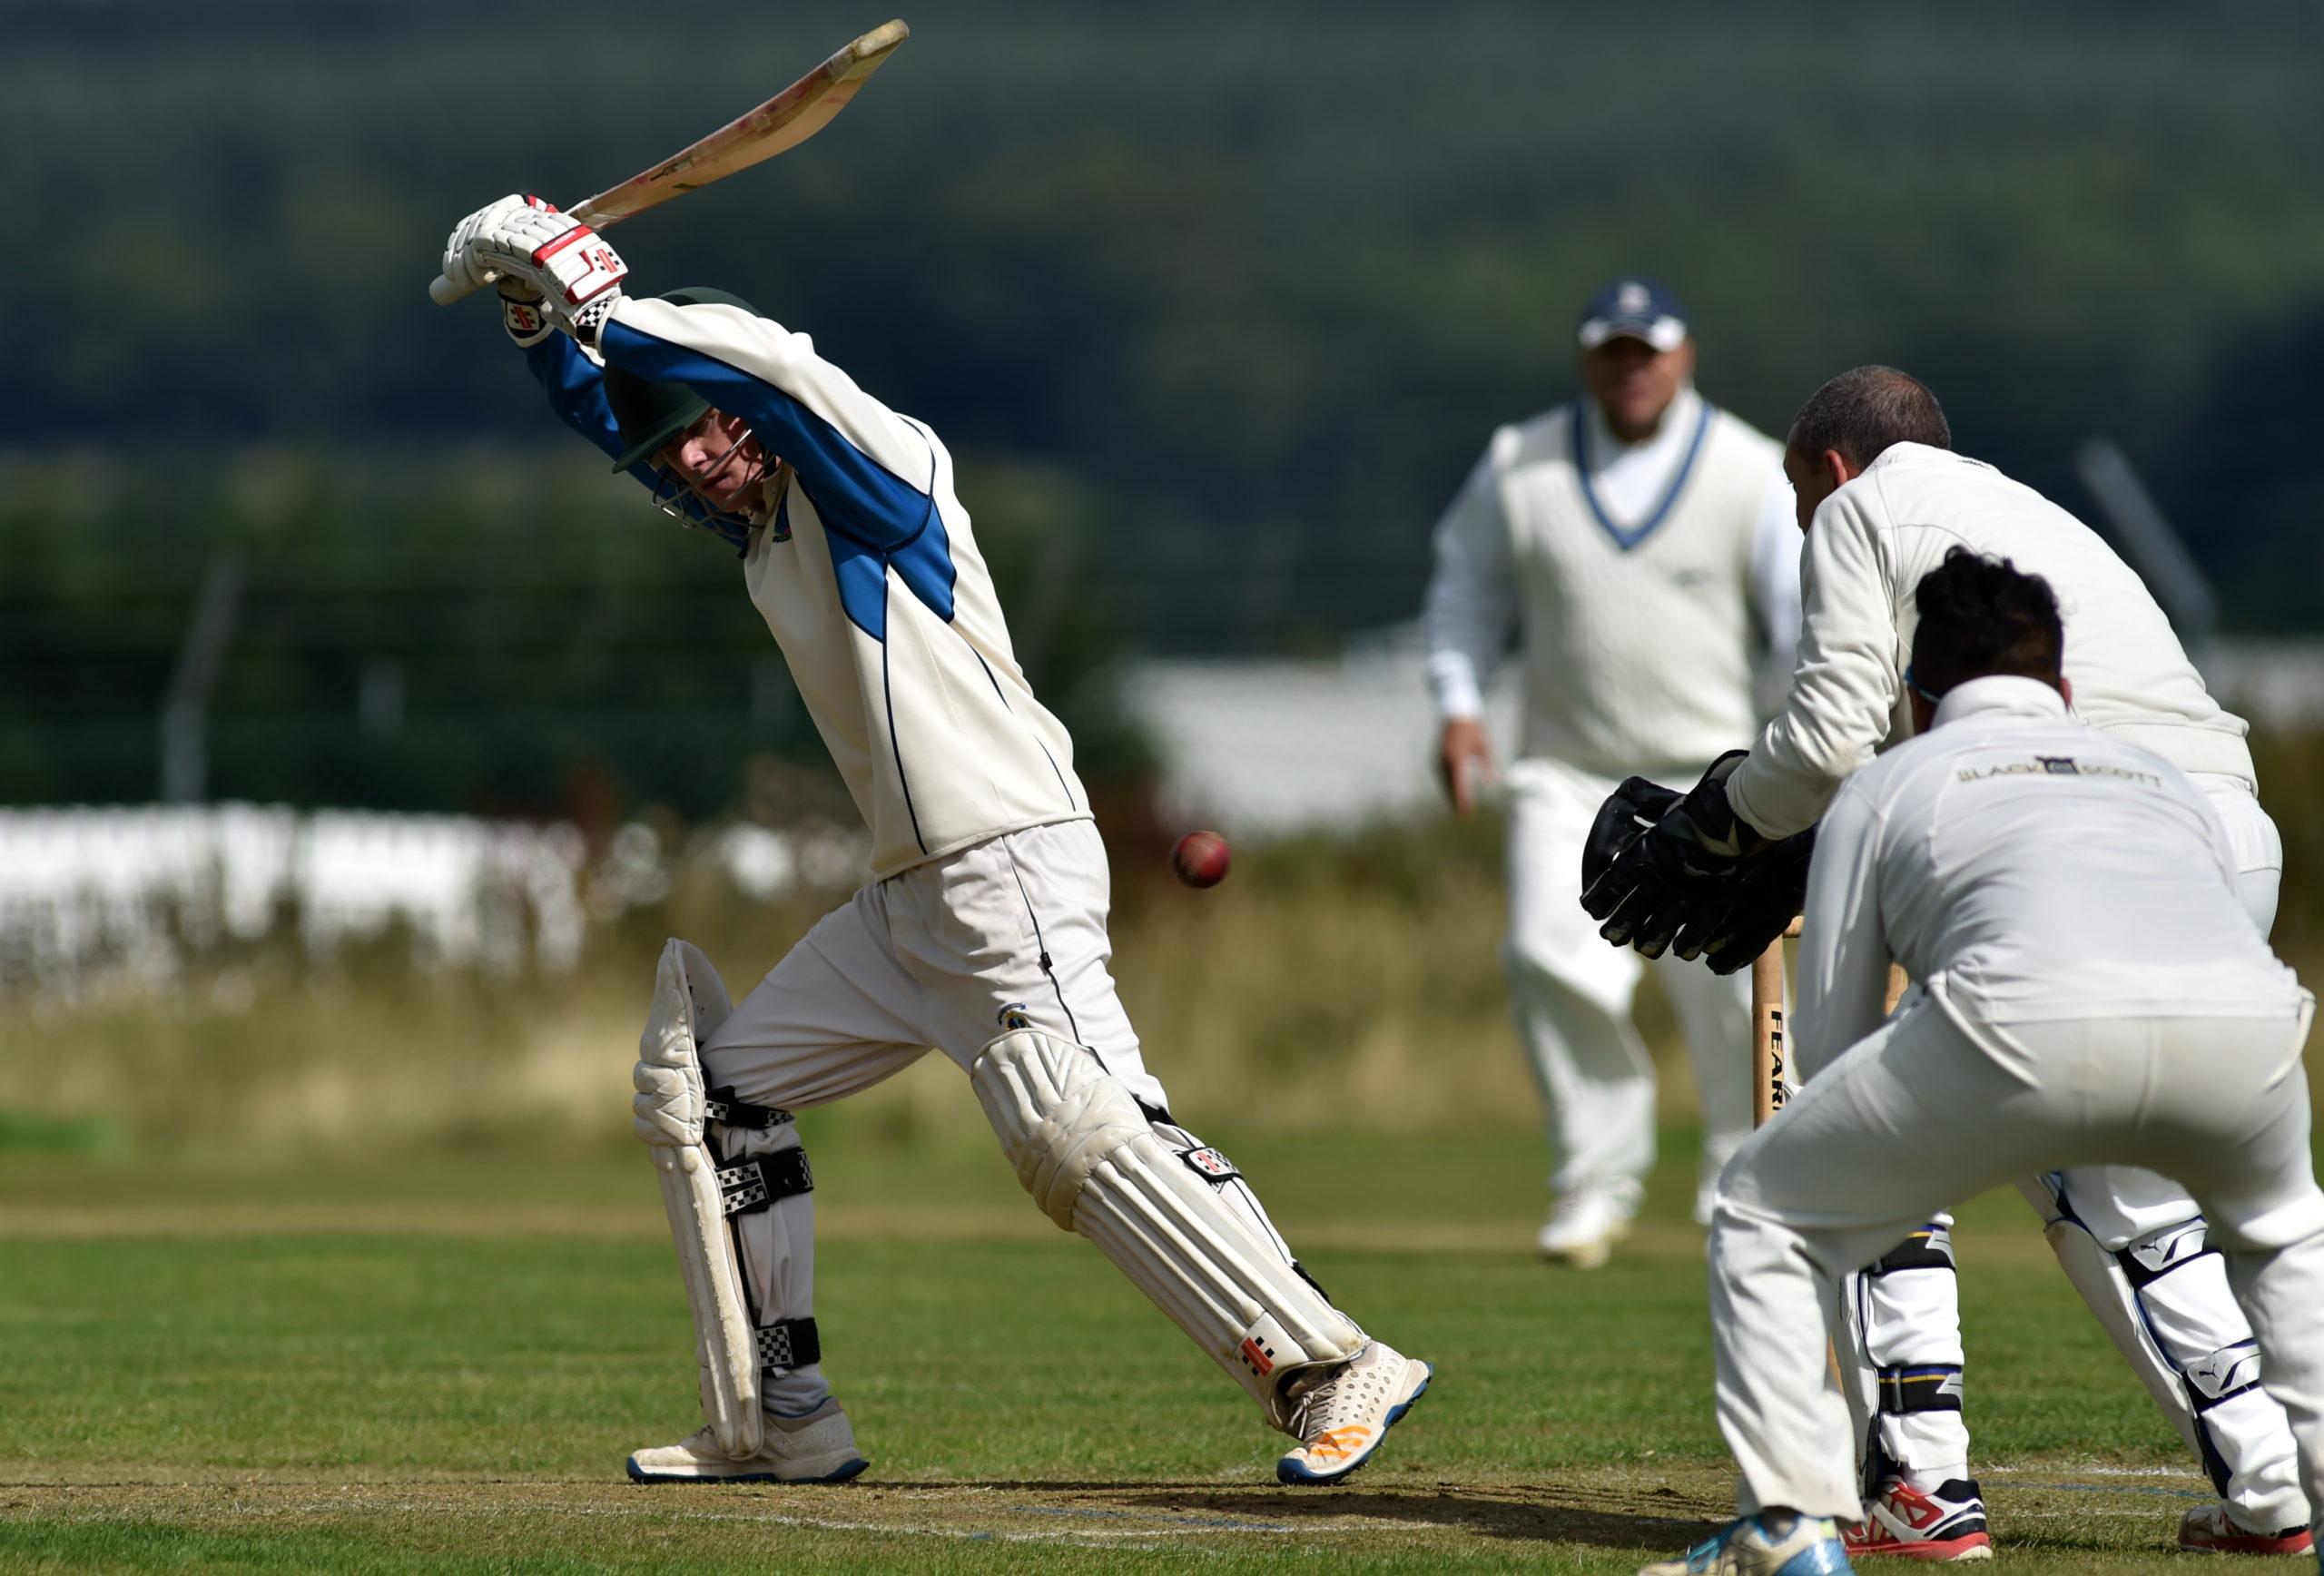 There's light at the end of the tunnel for cricket in the region.